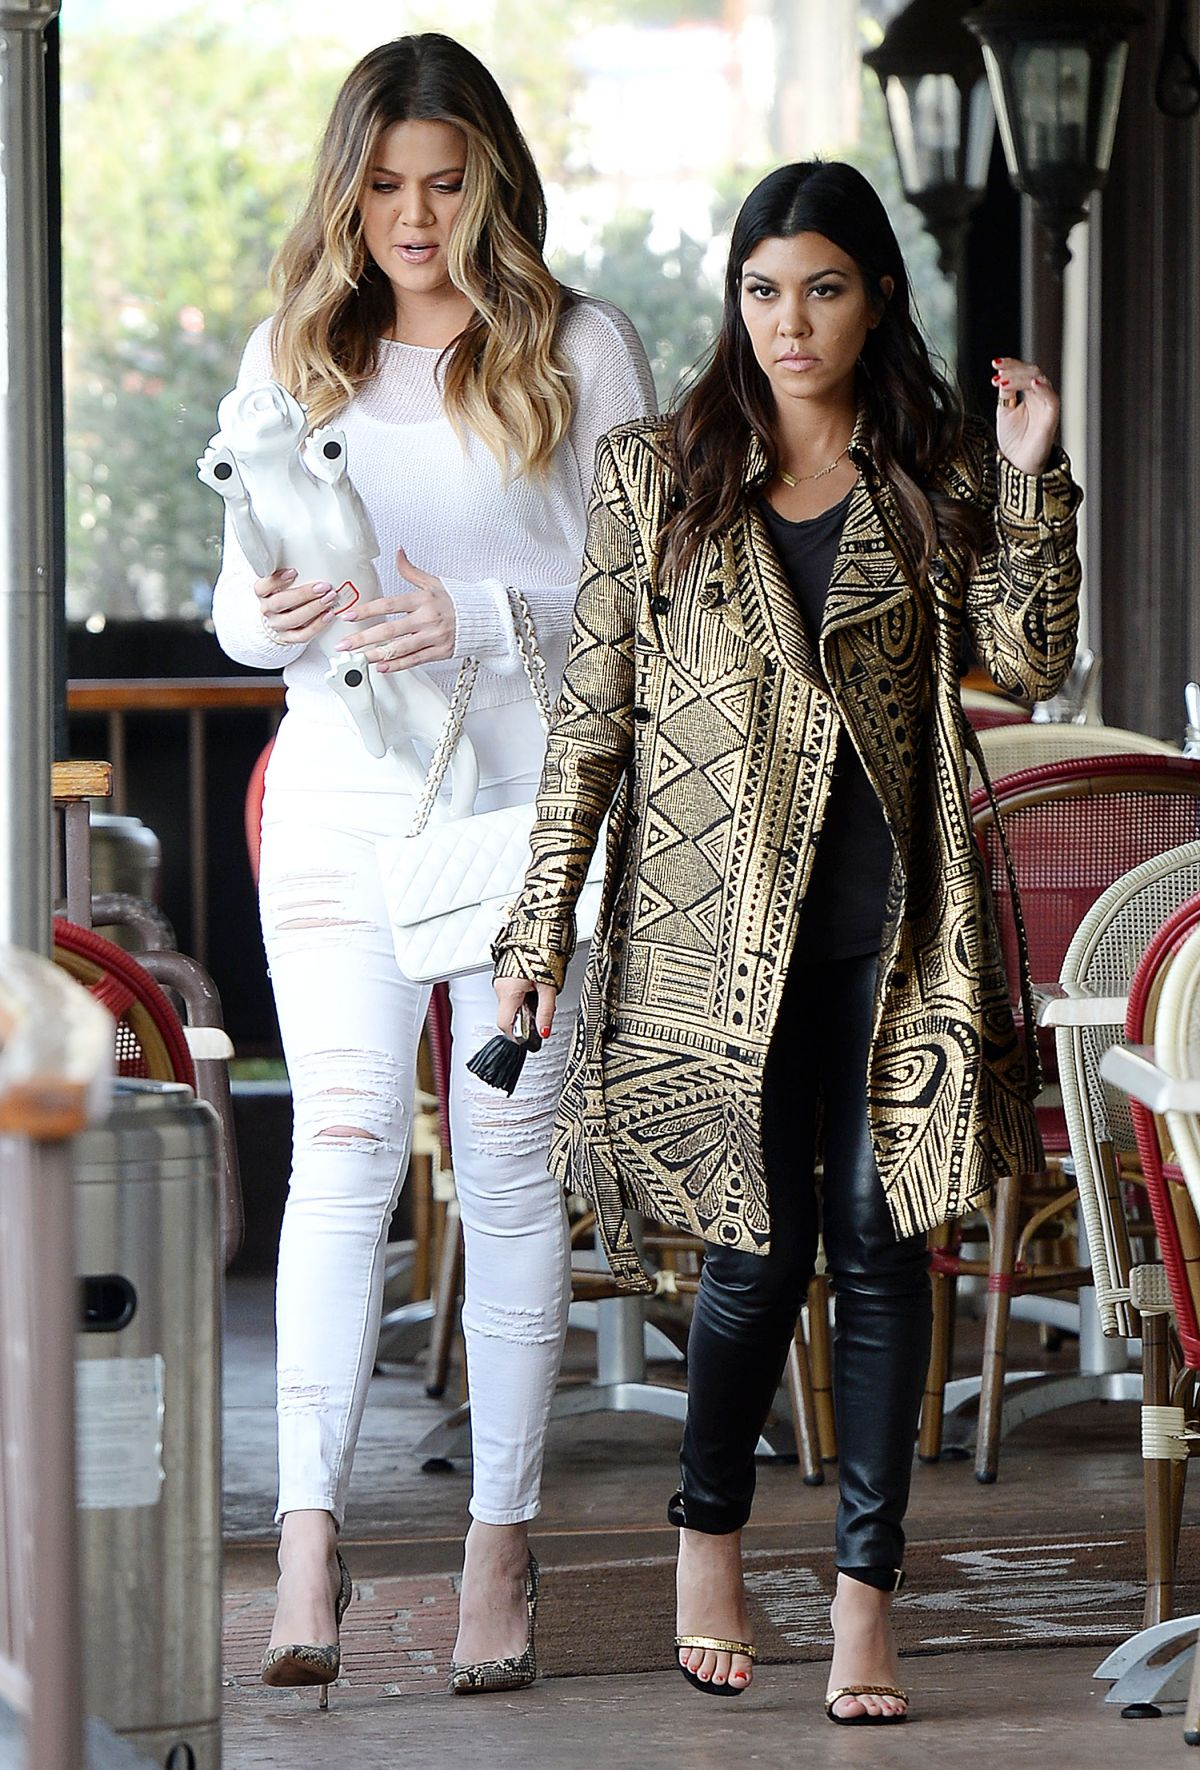 Khloe Kardashian And Kourtney Kardashian Filming At Leo&Lily In Woodland Hills